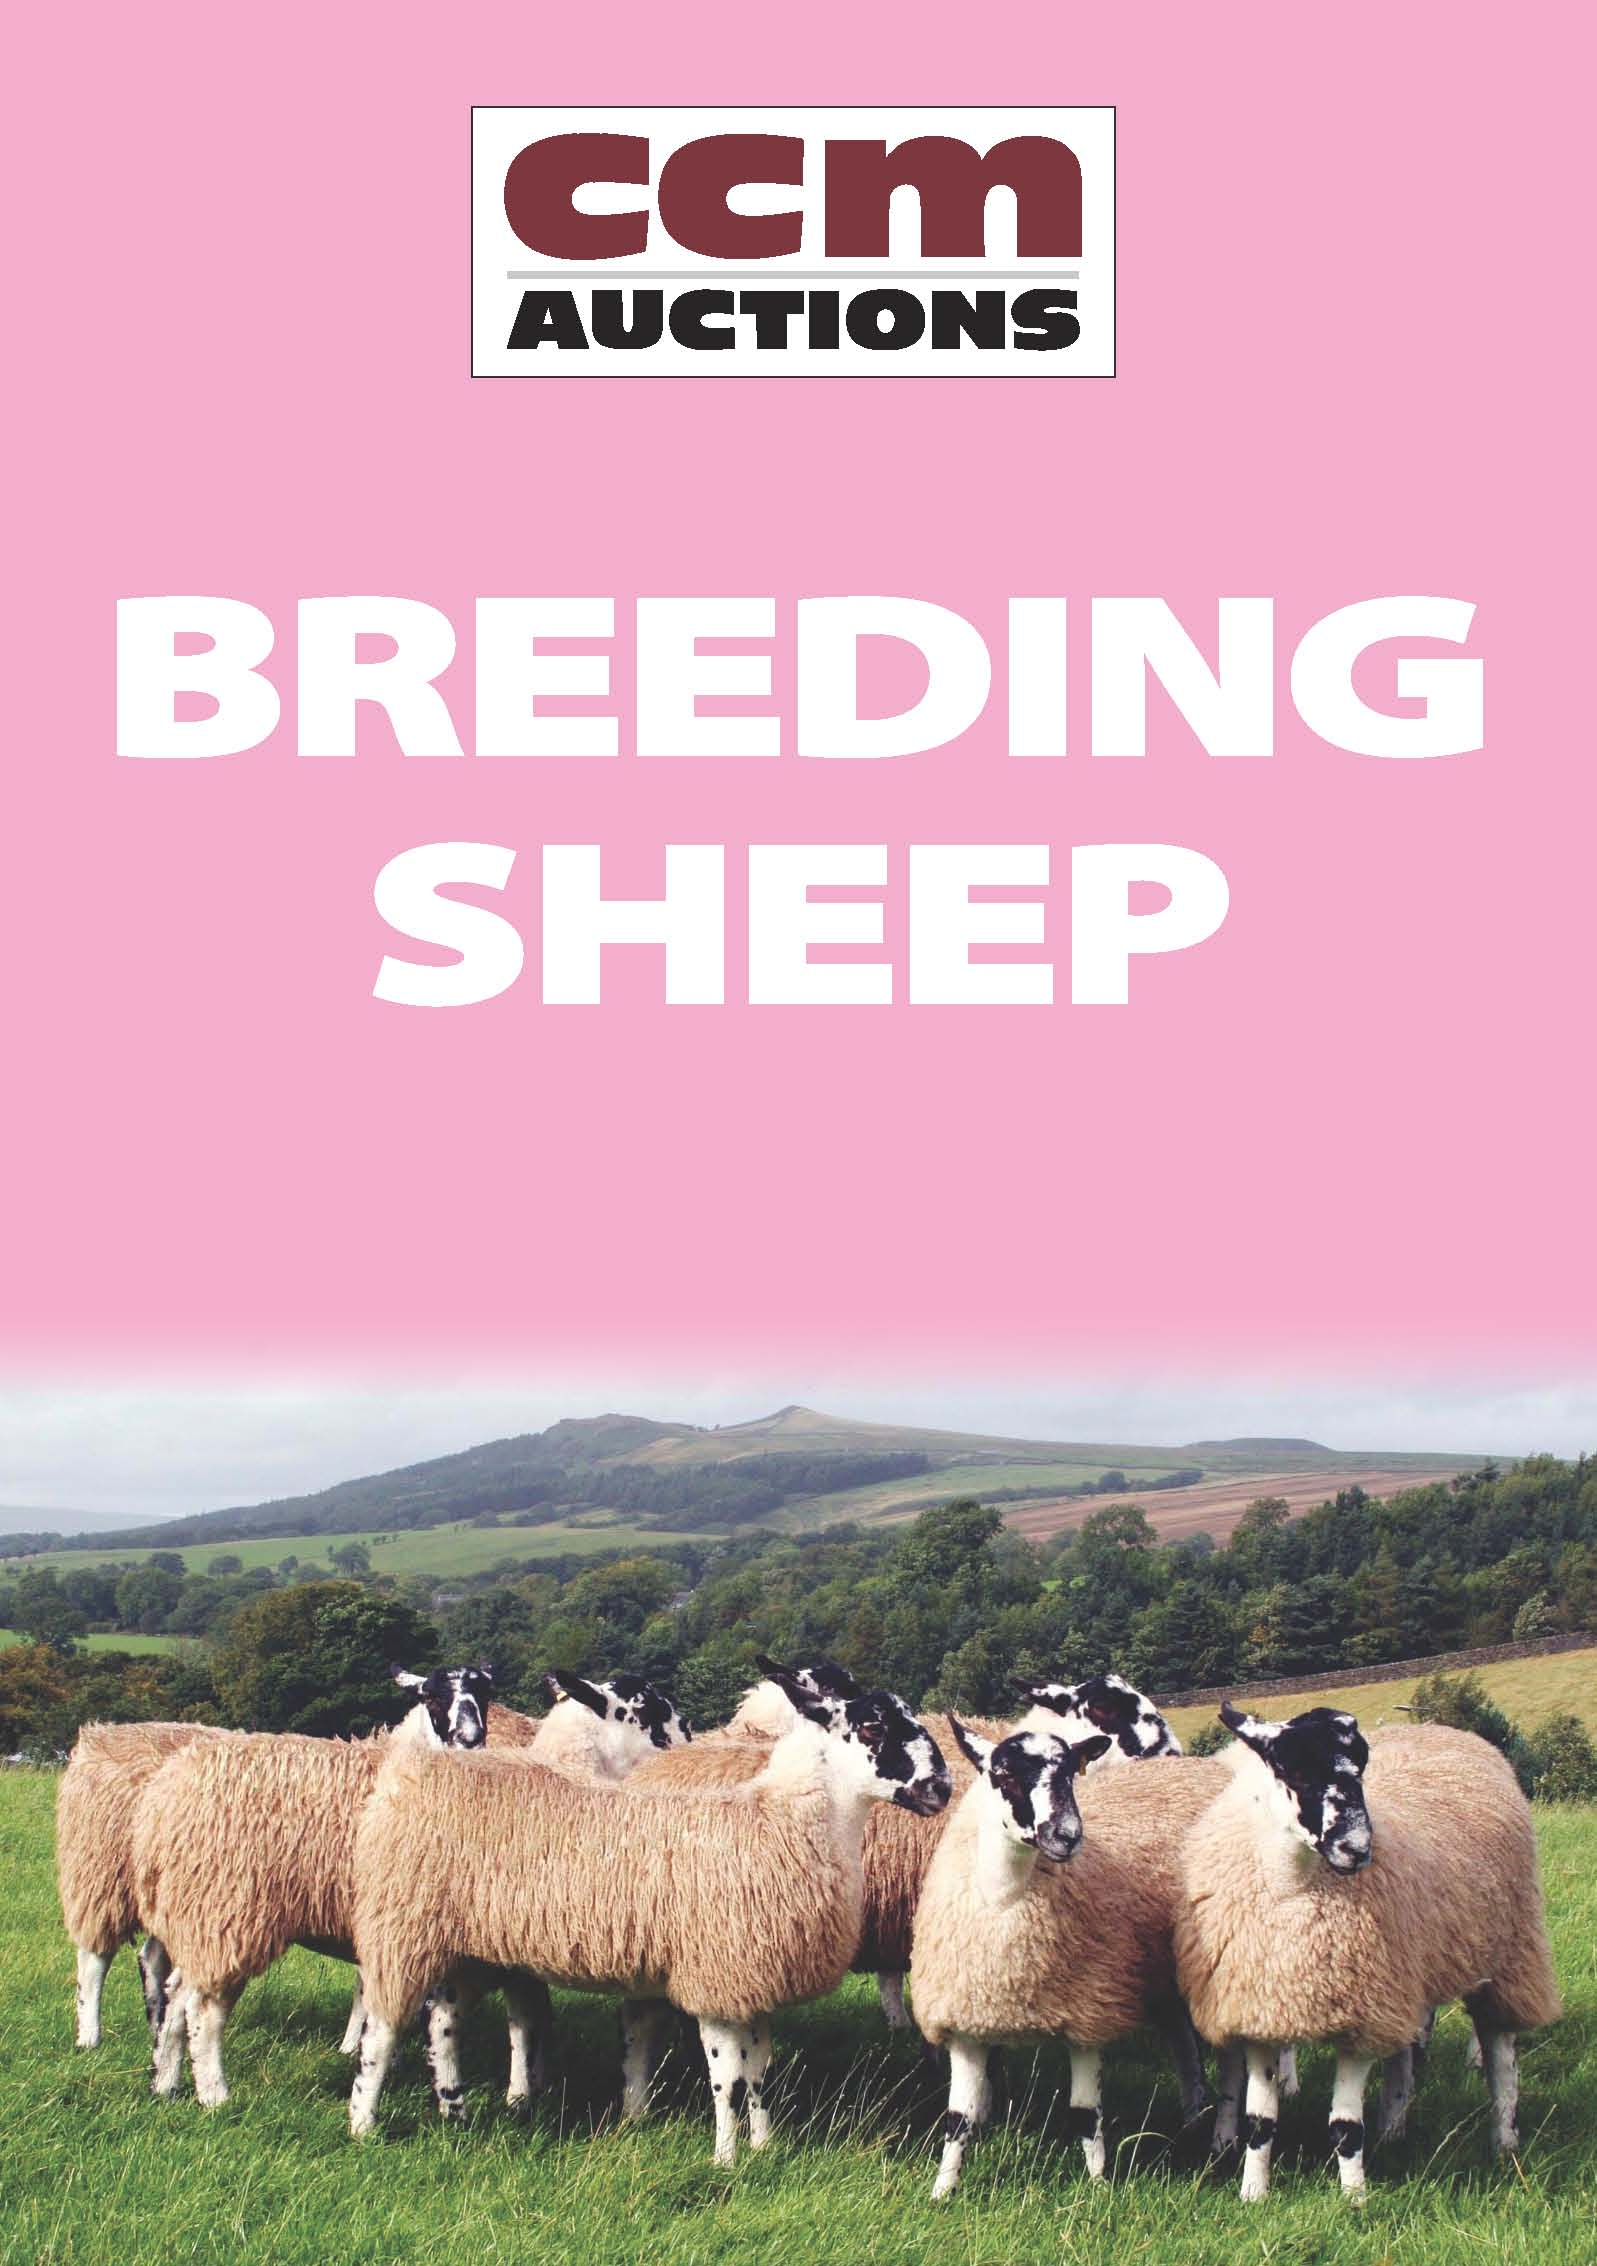 BREEDING SHEEP - MONDAY 15TH MAY 2017